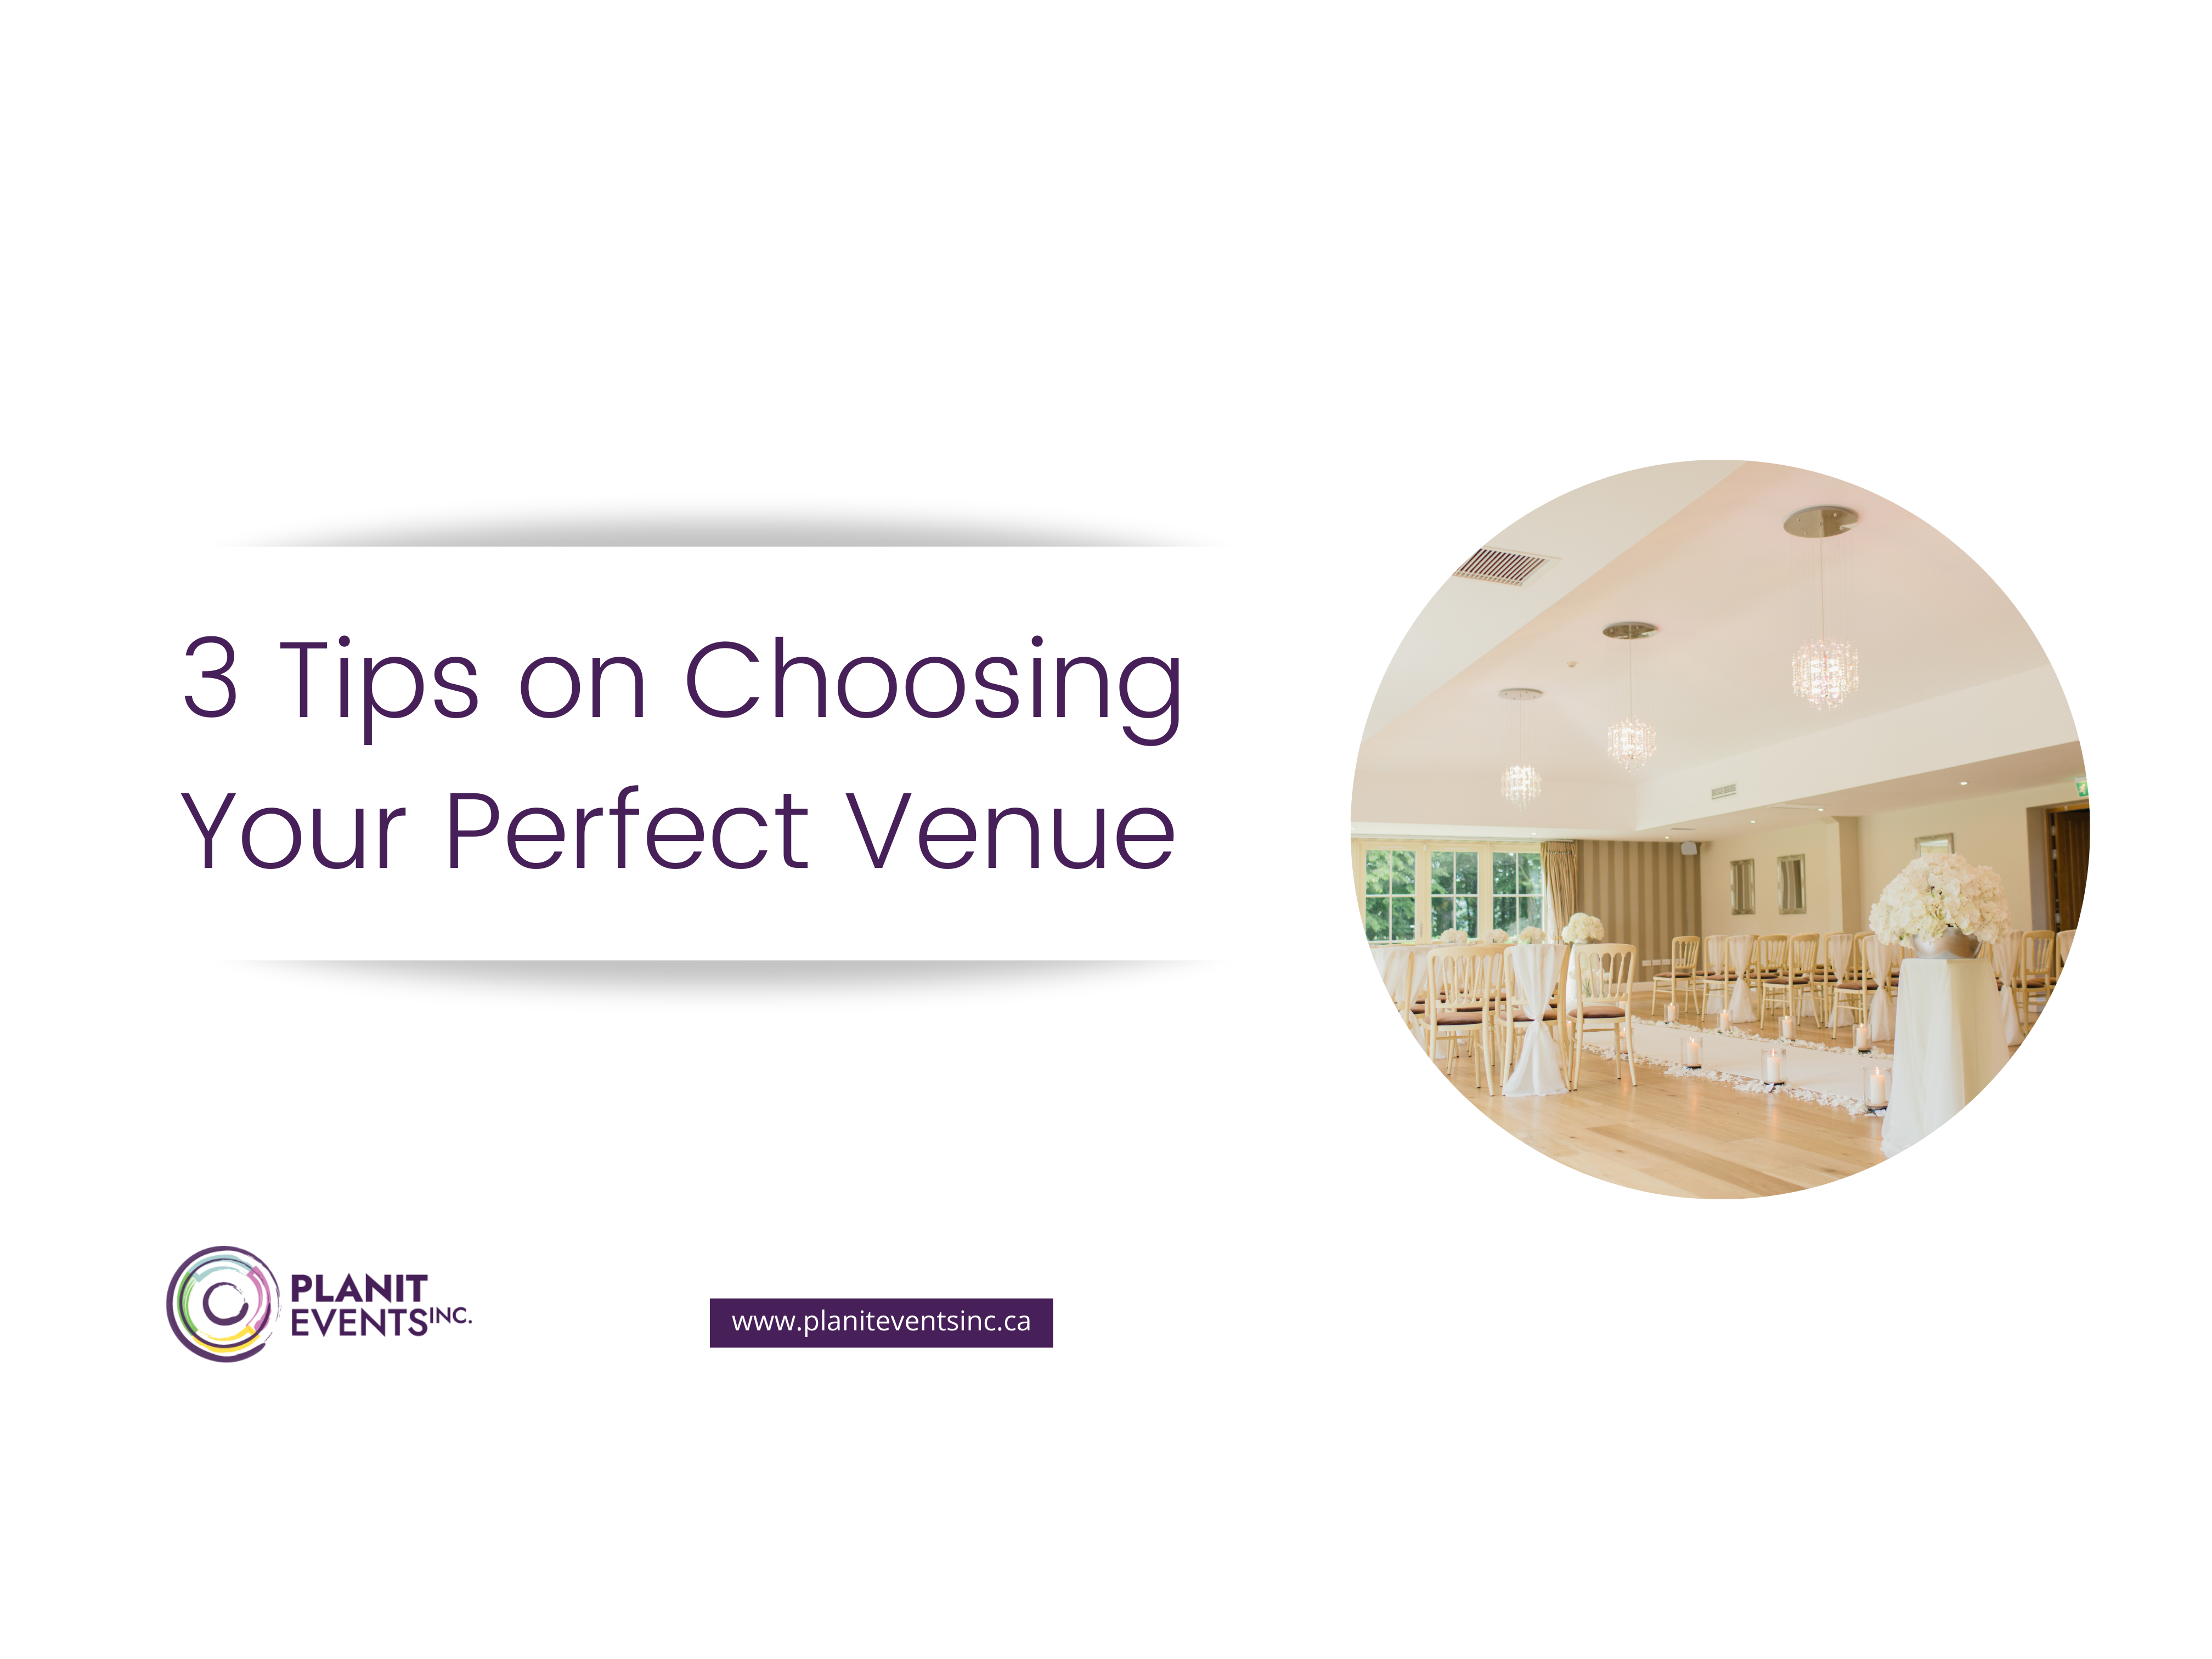 3 Tips on Choosing Your Perfect Venue